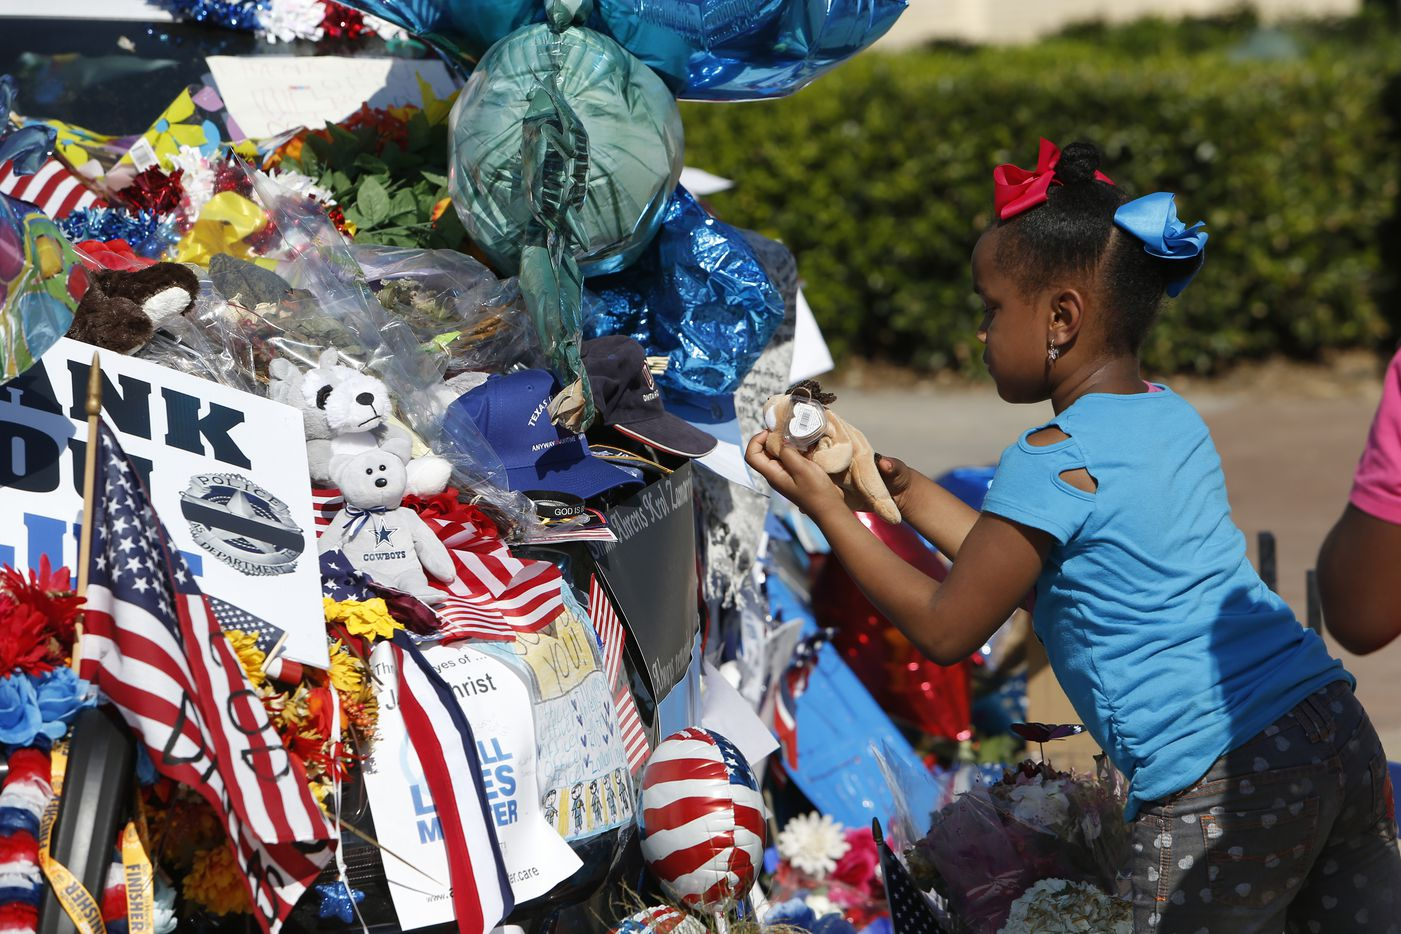 Willow Cook, 6, whose aunt is a jailer, takes a stuffed animal out to look at it before placing it back before before librarians from the Dallas Public Library collect items left at the Dallas Police Department memorial so that they may be archived and preserved, at  Jack Evans Police Headquarters in Dallas, TX July 19, 2016.